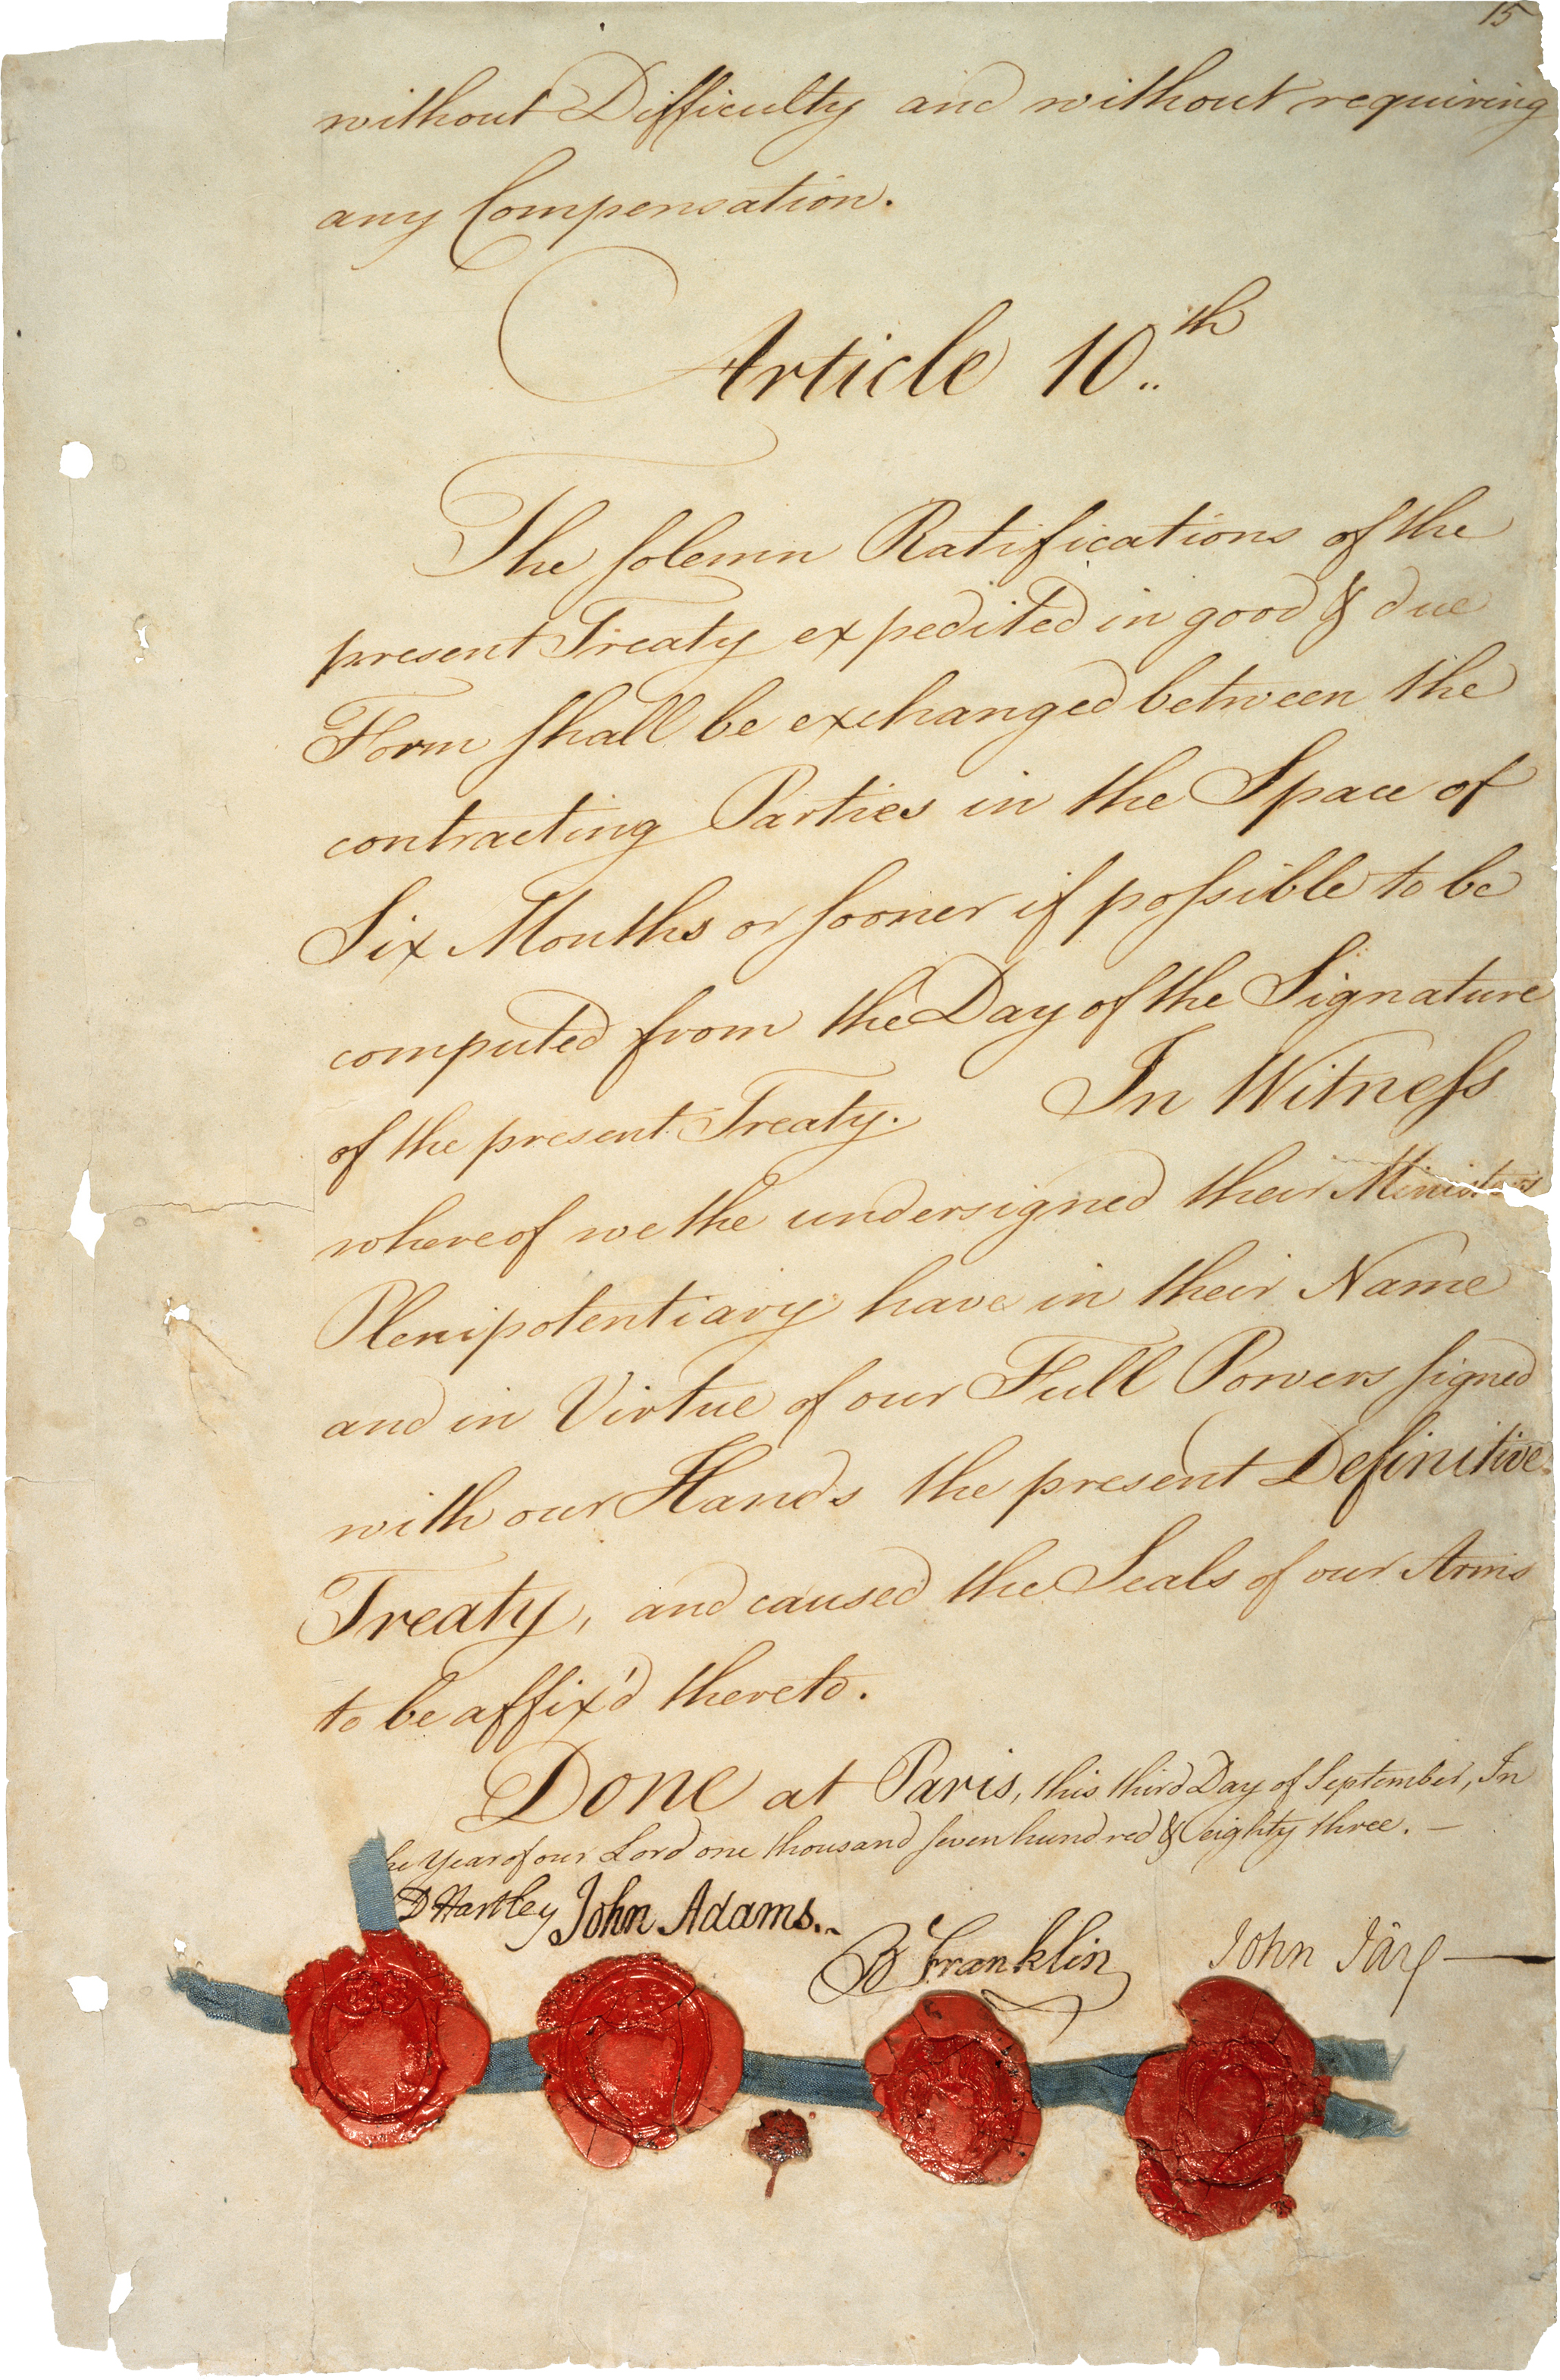 The last page of the Treaty of Paris of 1783